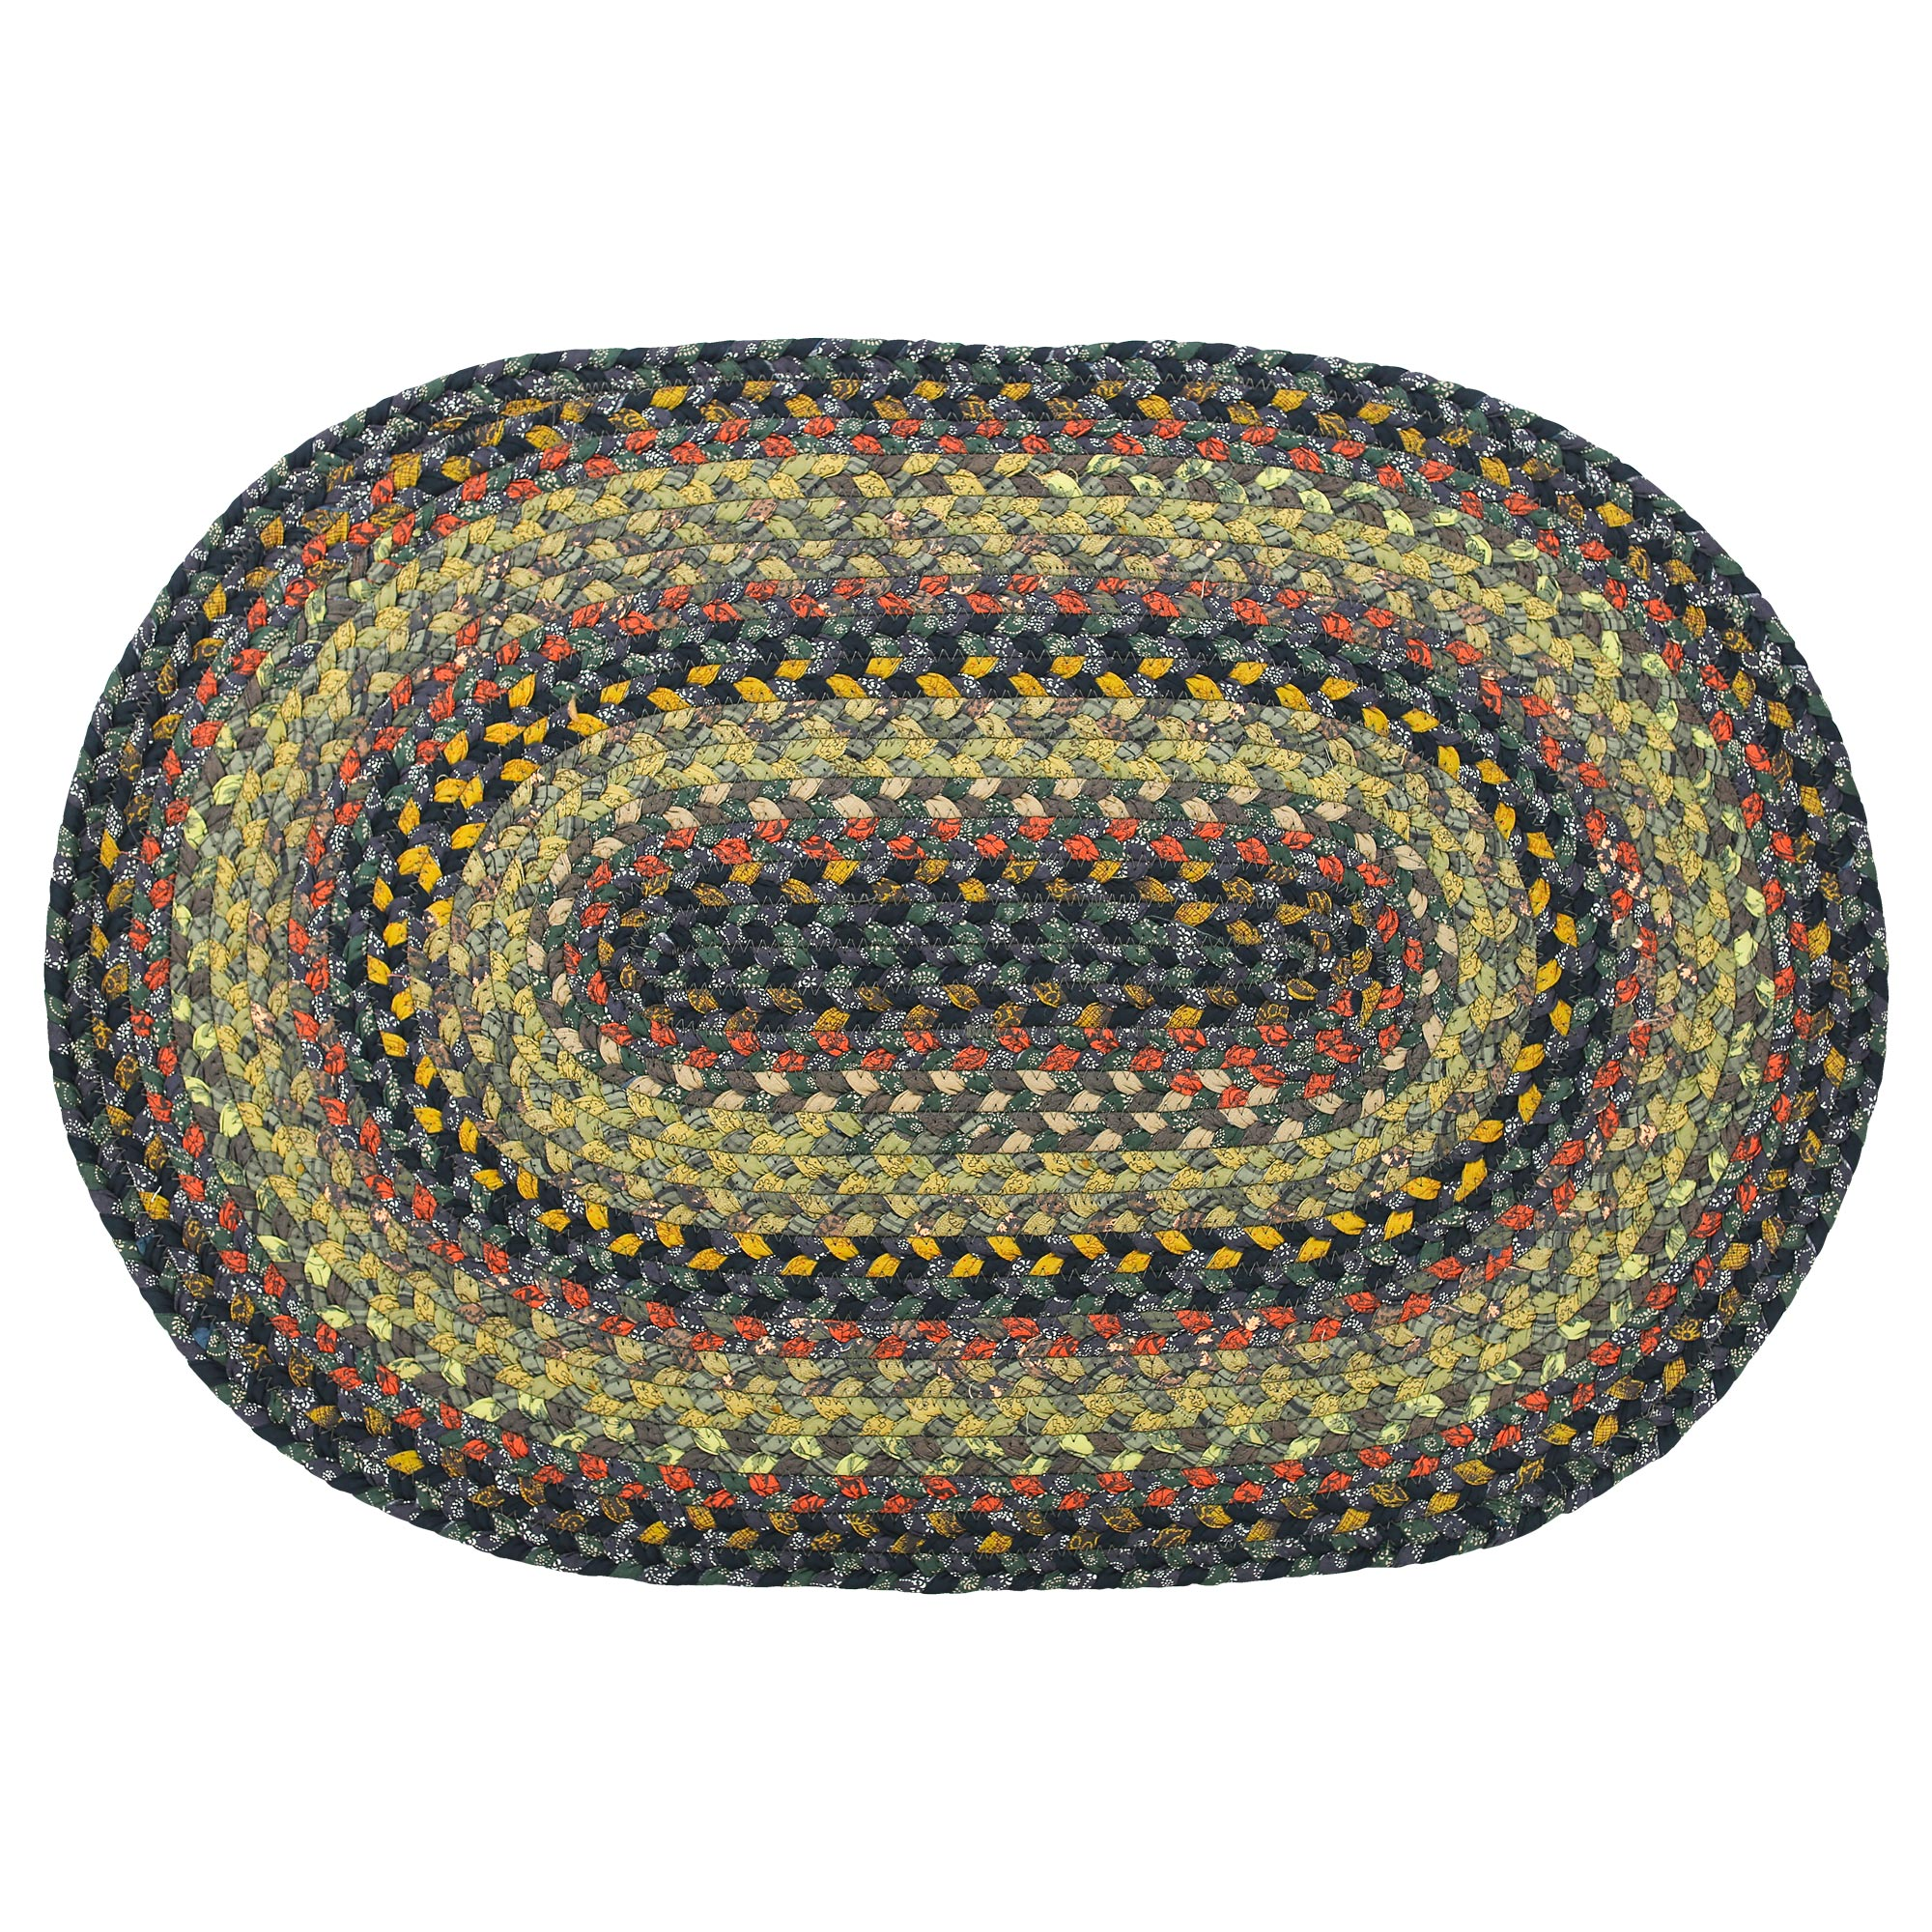 Traditional Country Cotton Braided Area Rugs Oval